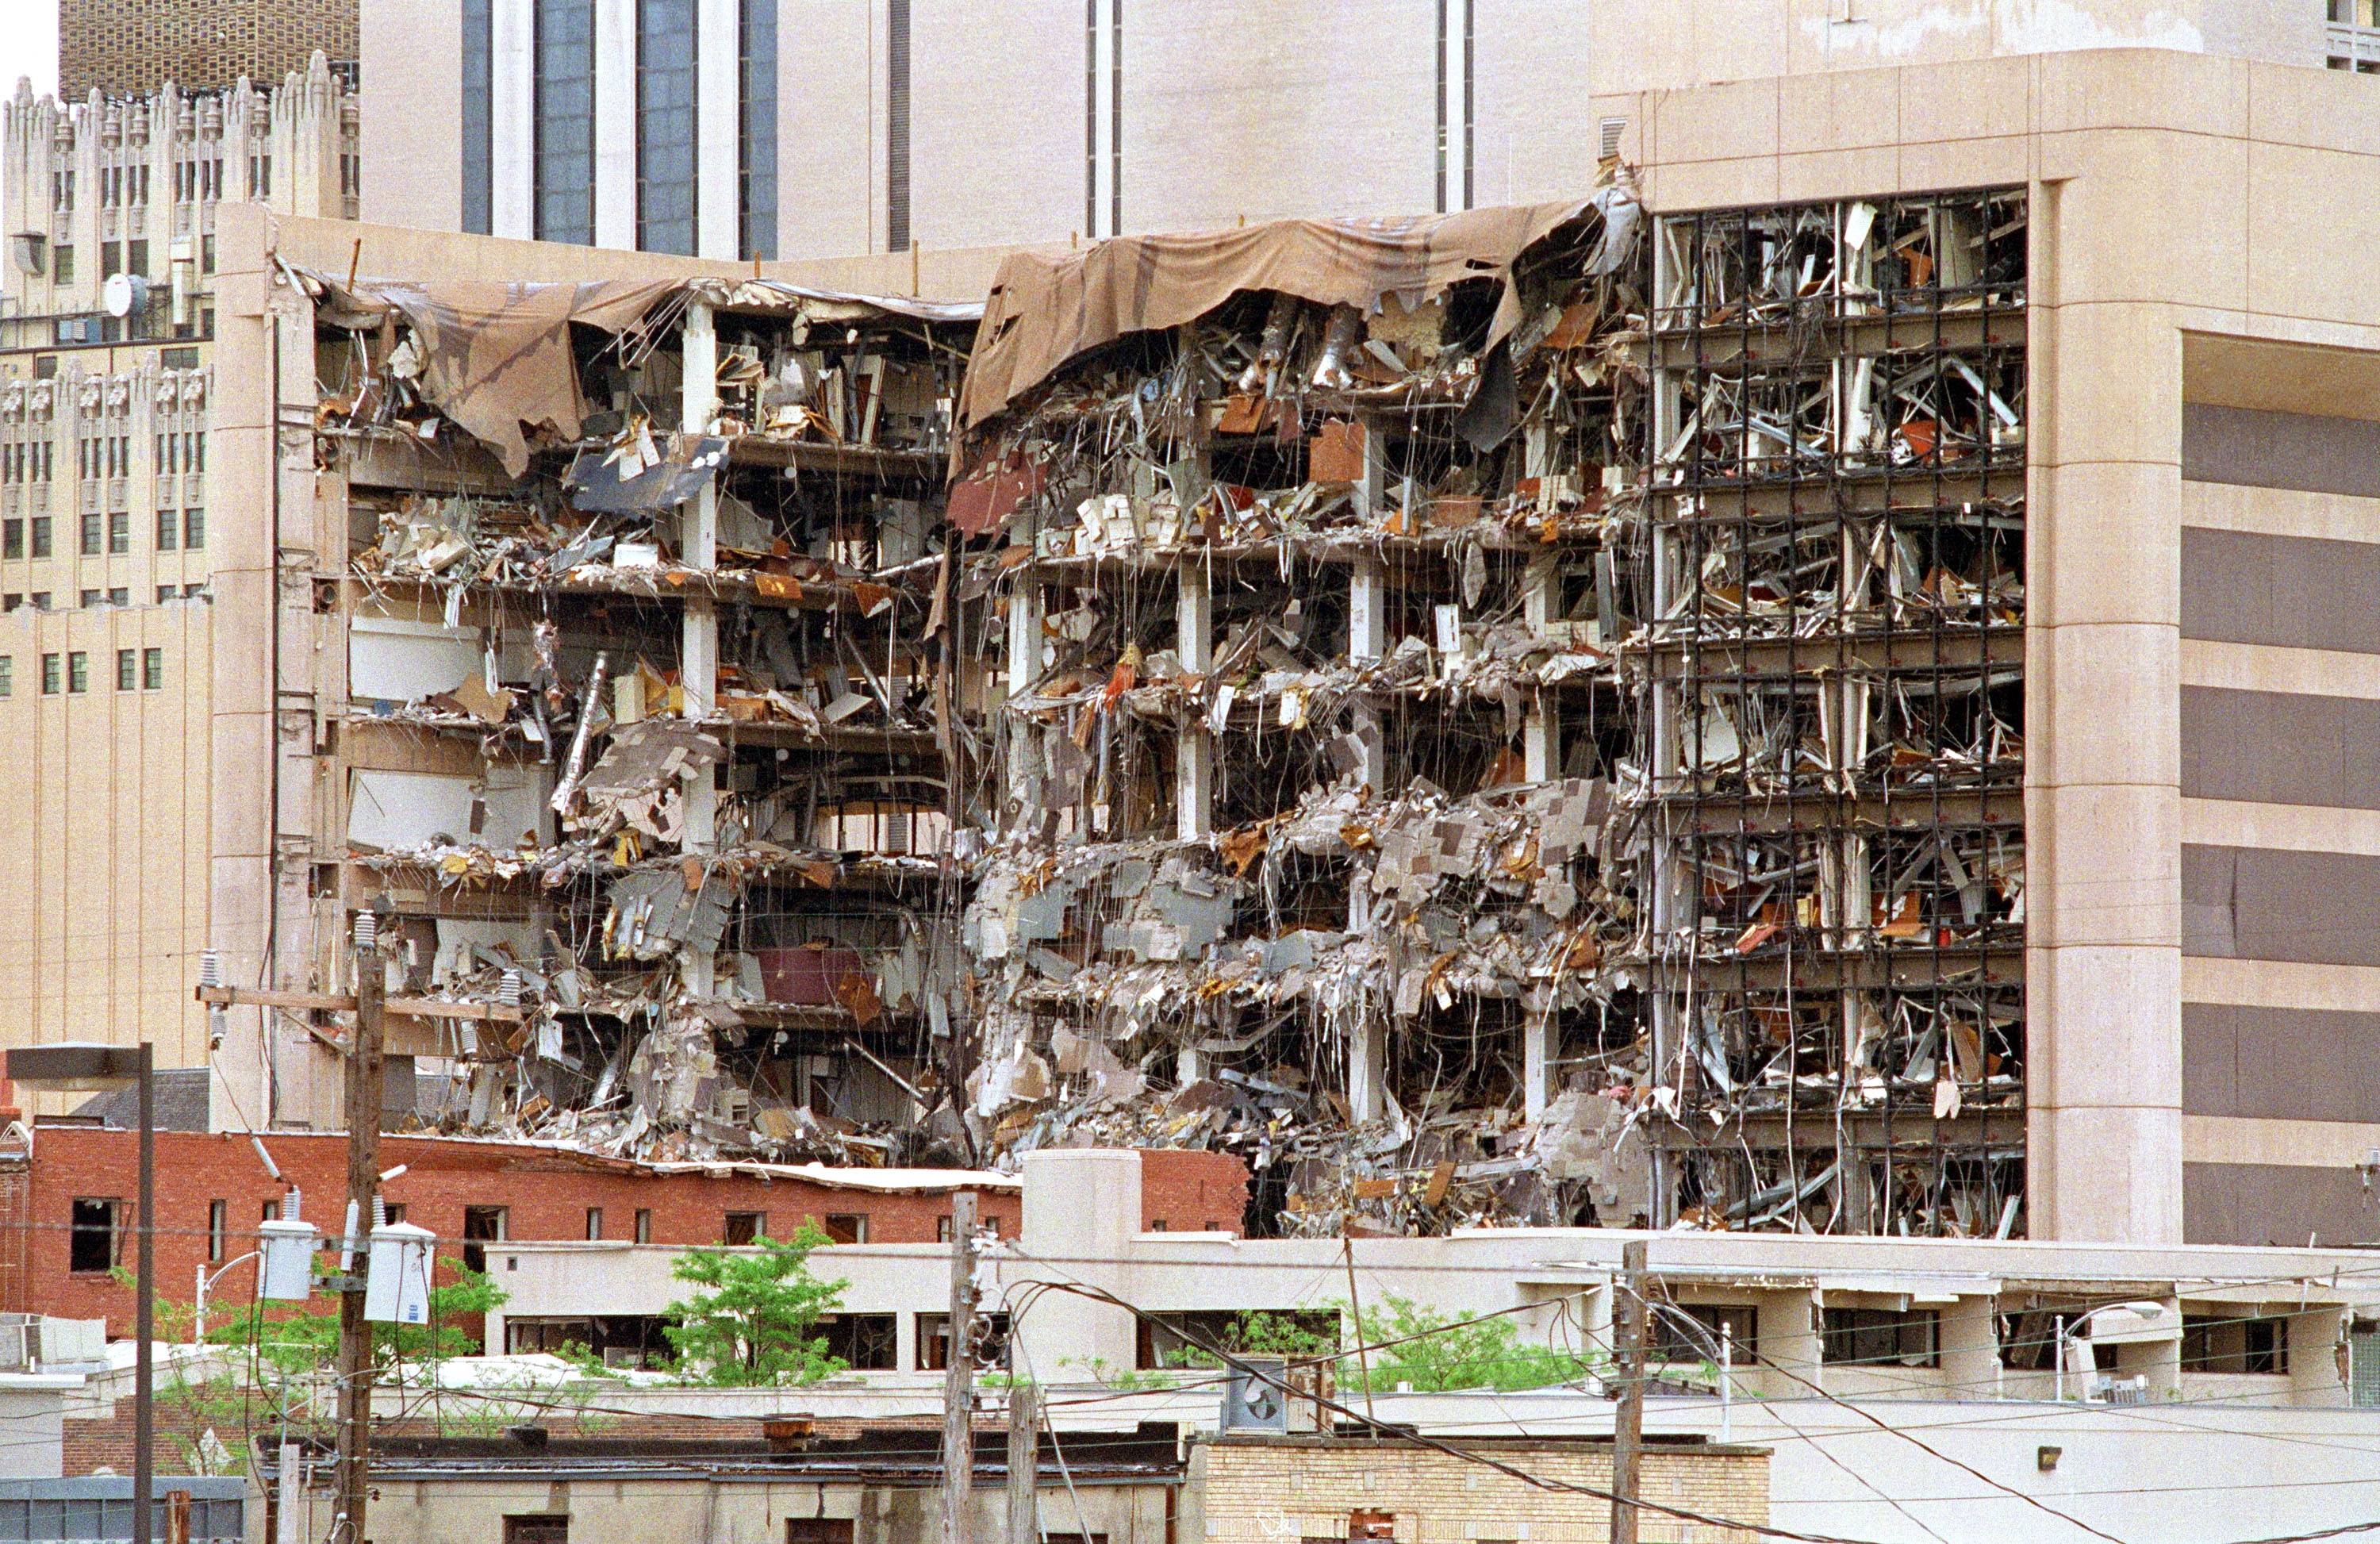 The north side of the Albert P. Murrah Federal Building in Oklahoma City shows 19 April 1995 the devastation caused by a fuel-and fertilizer truck bomb that was detonated early 19 April in front of the building. The blast, the worst terror attack on US soil, killed 168 people and injured more than 500. Timothy McVeigh, convicted on first-degree murder charges for the 19 April bombing was sentenced to death in 1997.